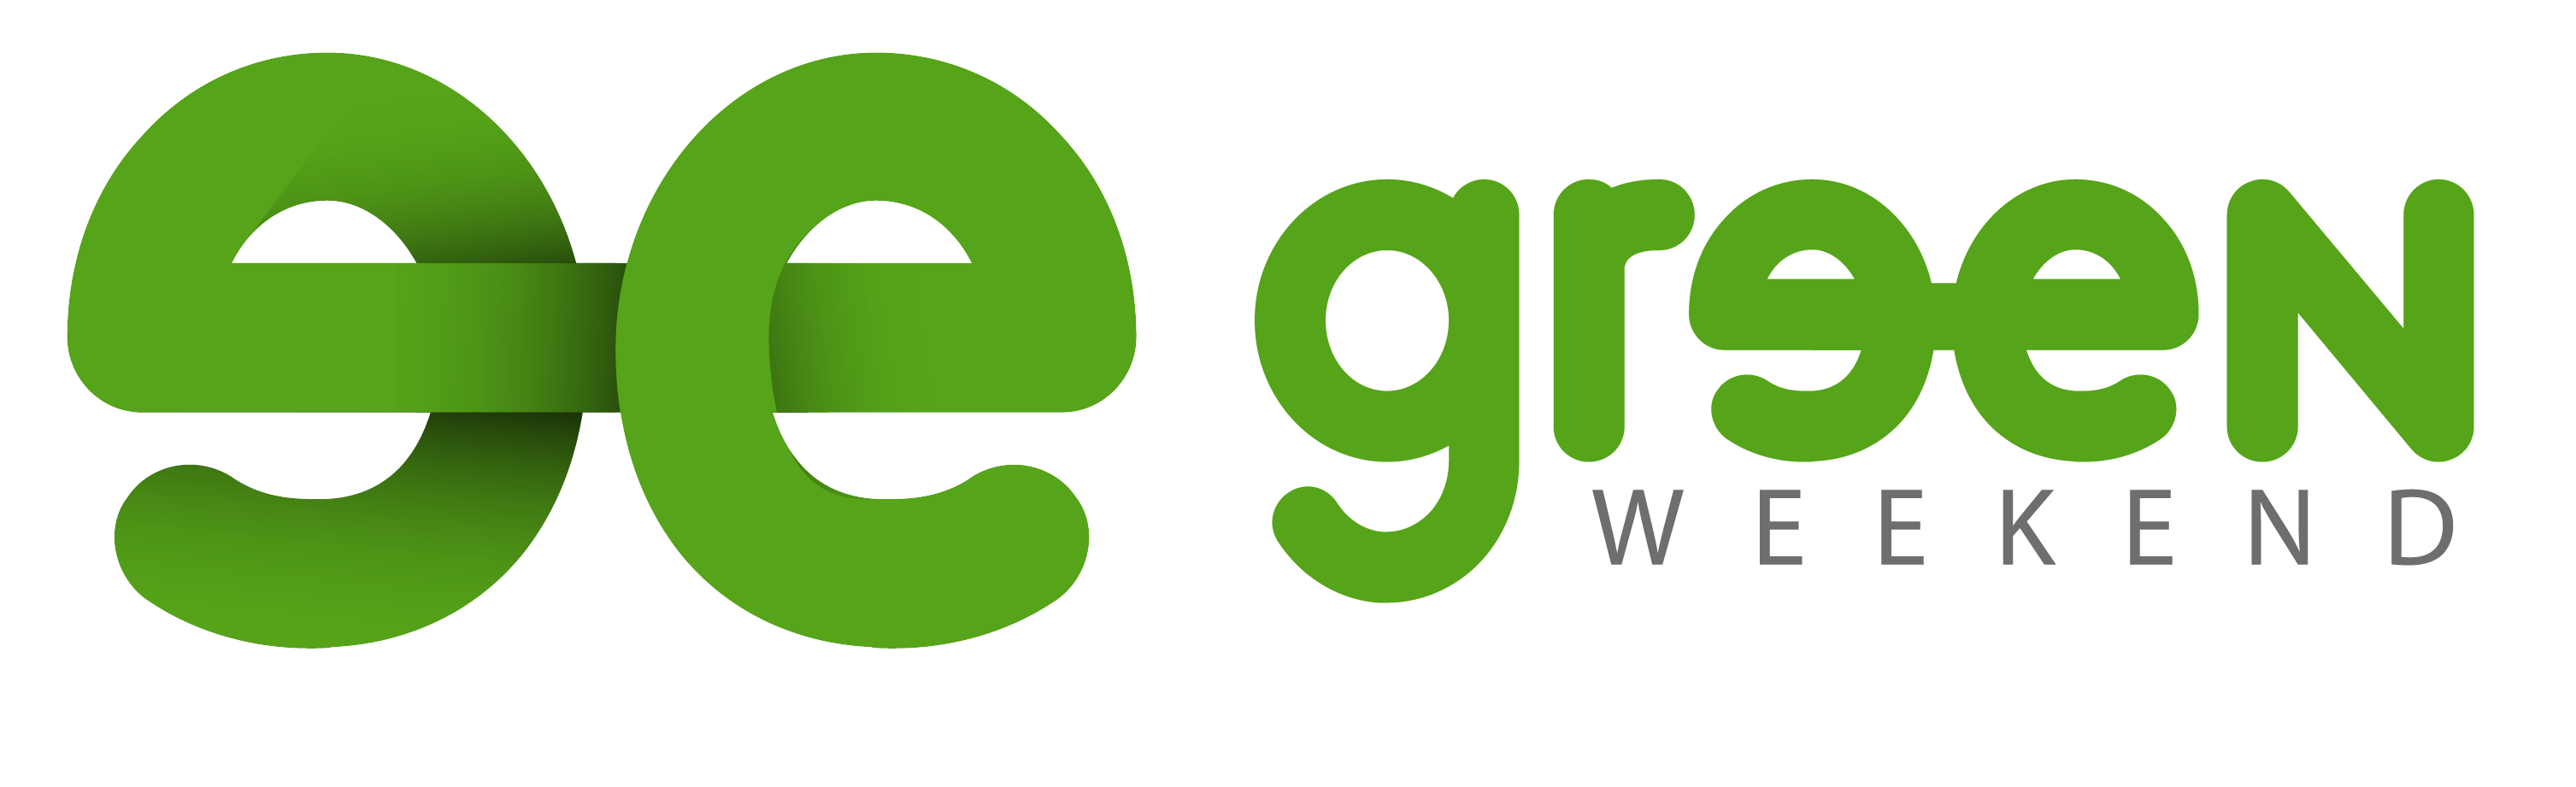 Logo del evento Greenweekend Algeciras